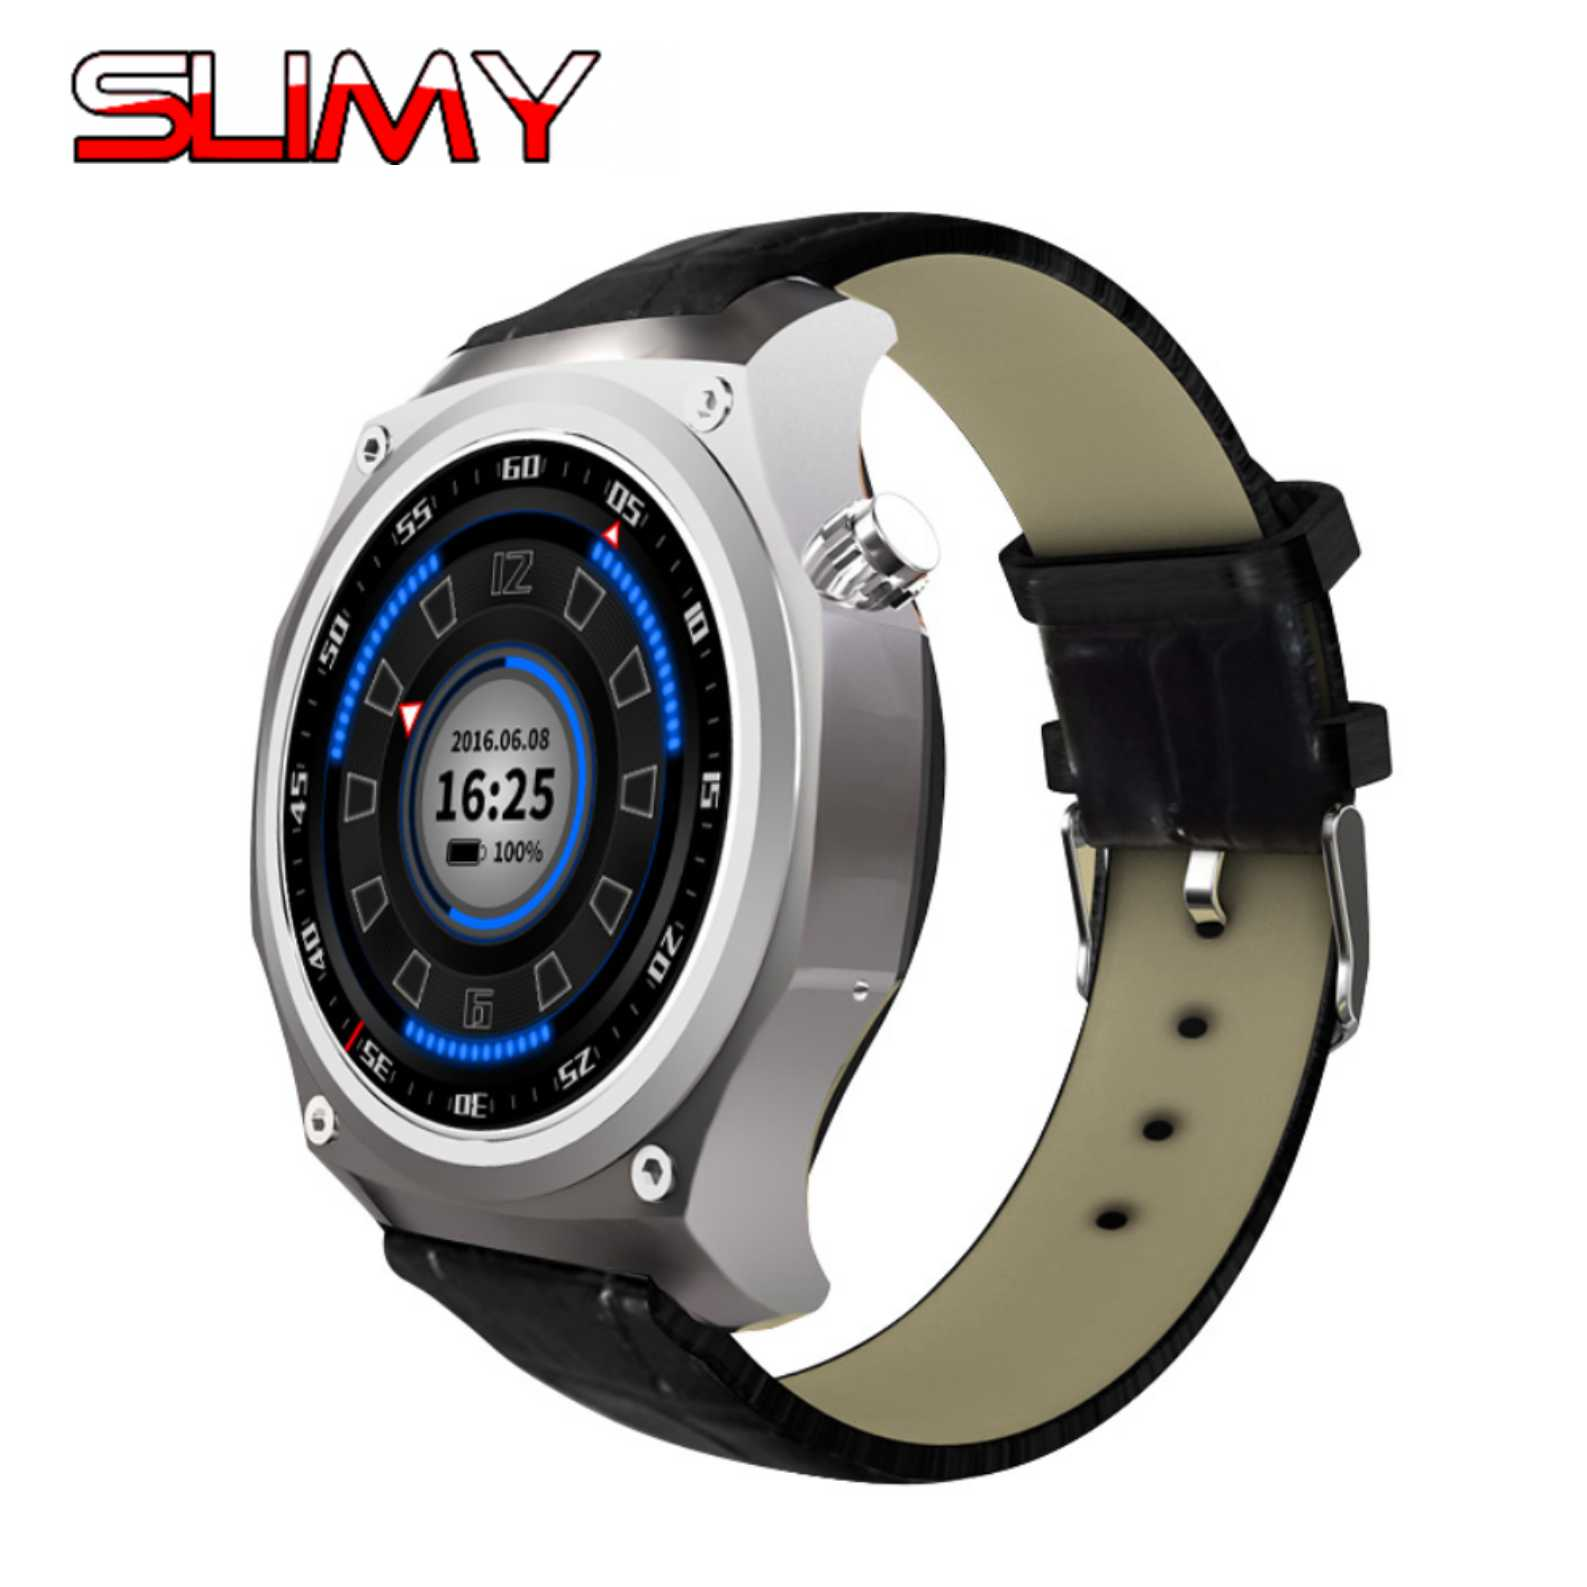 Slimy 3G Wifi Smart Watch 512MB+4GB Android 5.1 Heart Rate Smartwatch with GPS Wristwatch For Android IOS Phone PK KW88 KW99 smart watch smartwatch dm368 1 39 amoled display quad core bluetooth4 heart rate monitor wristwatch ios android phones pk k8